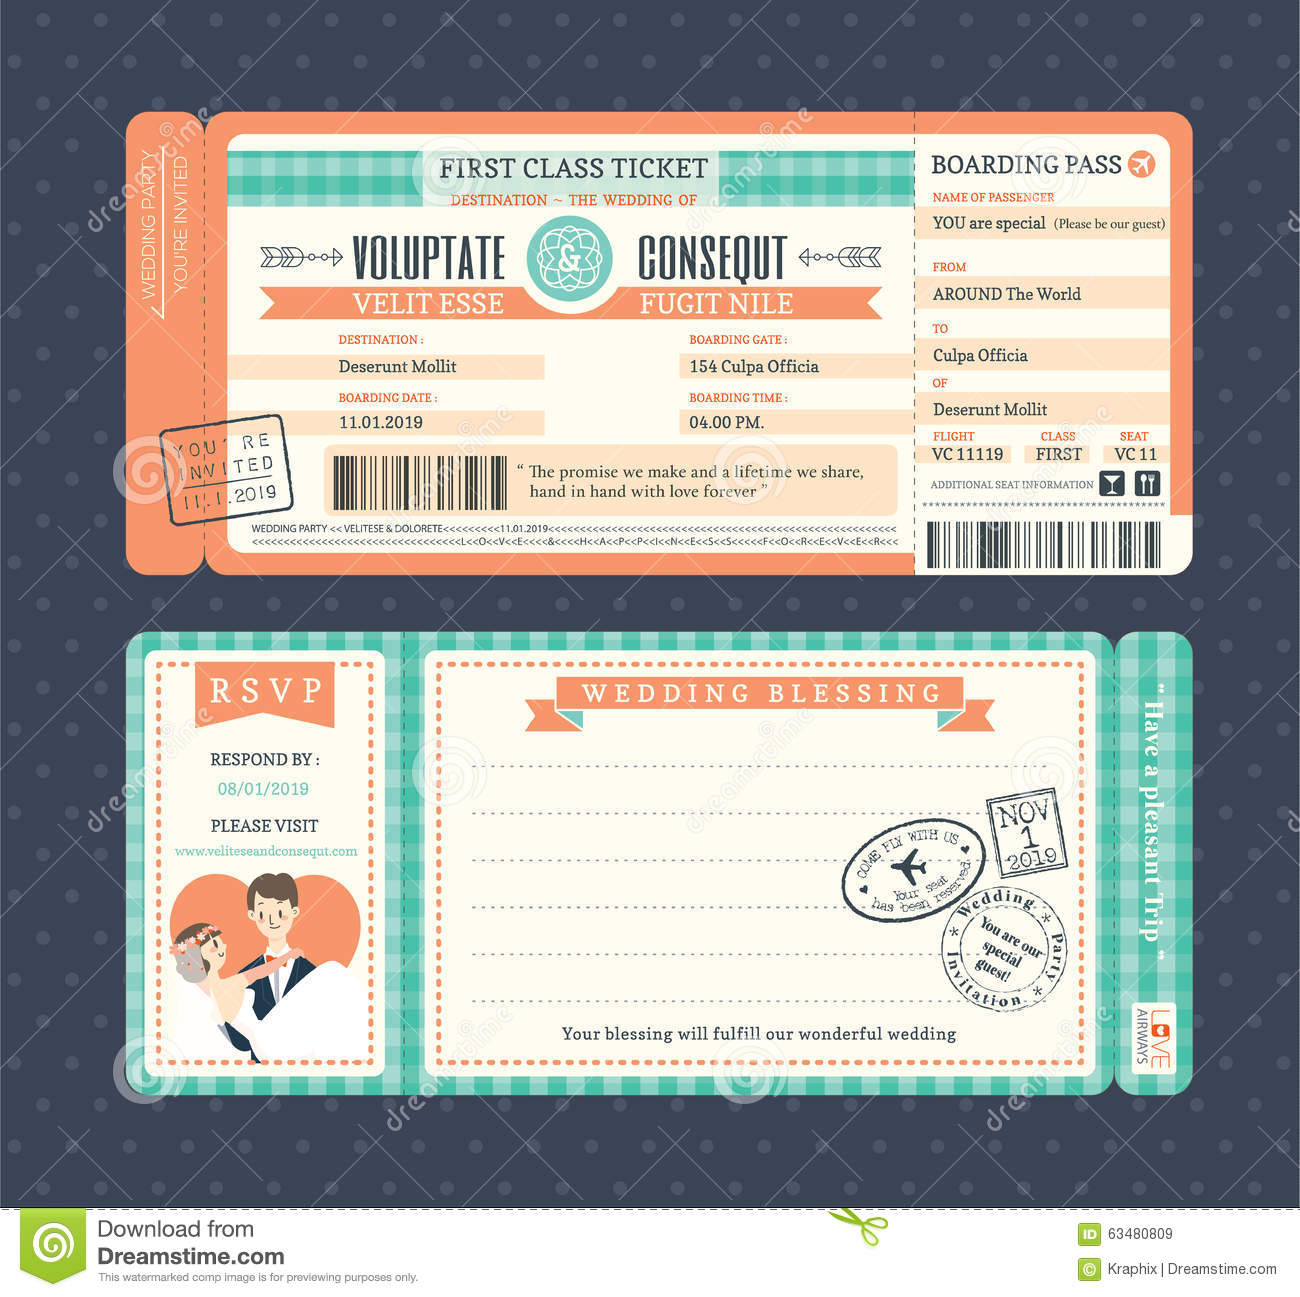 Plane Ticket Invitation Template Free futurecliminfo